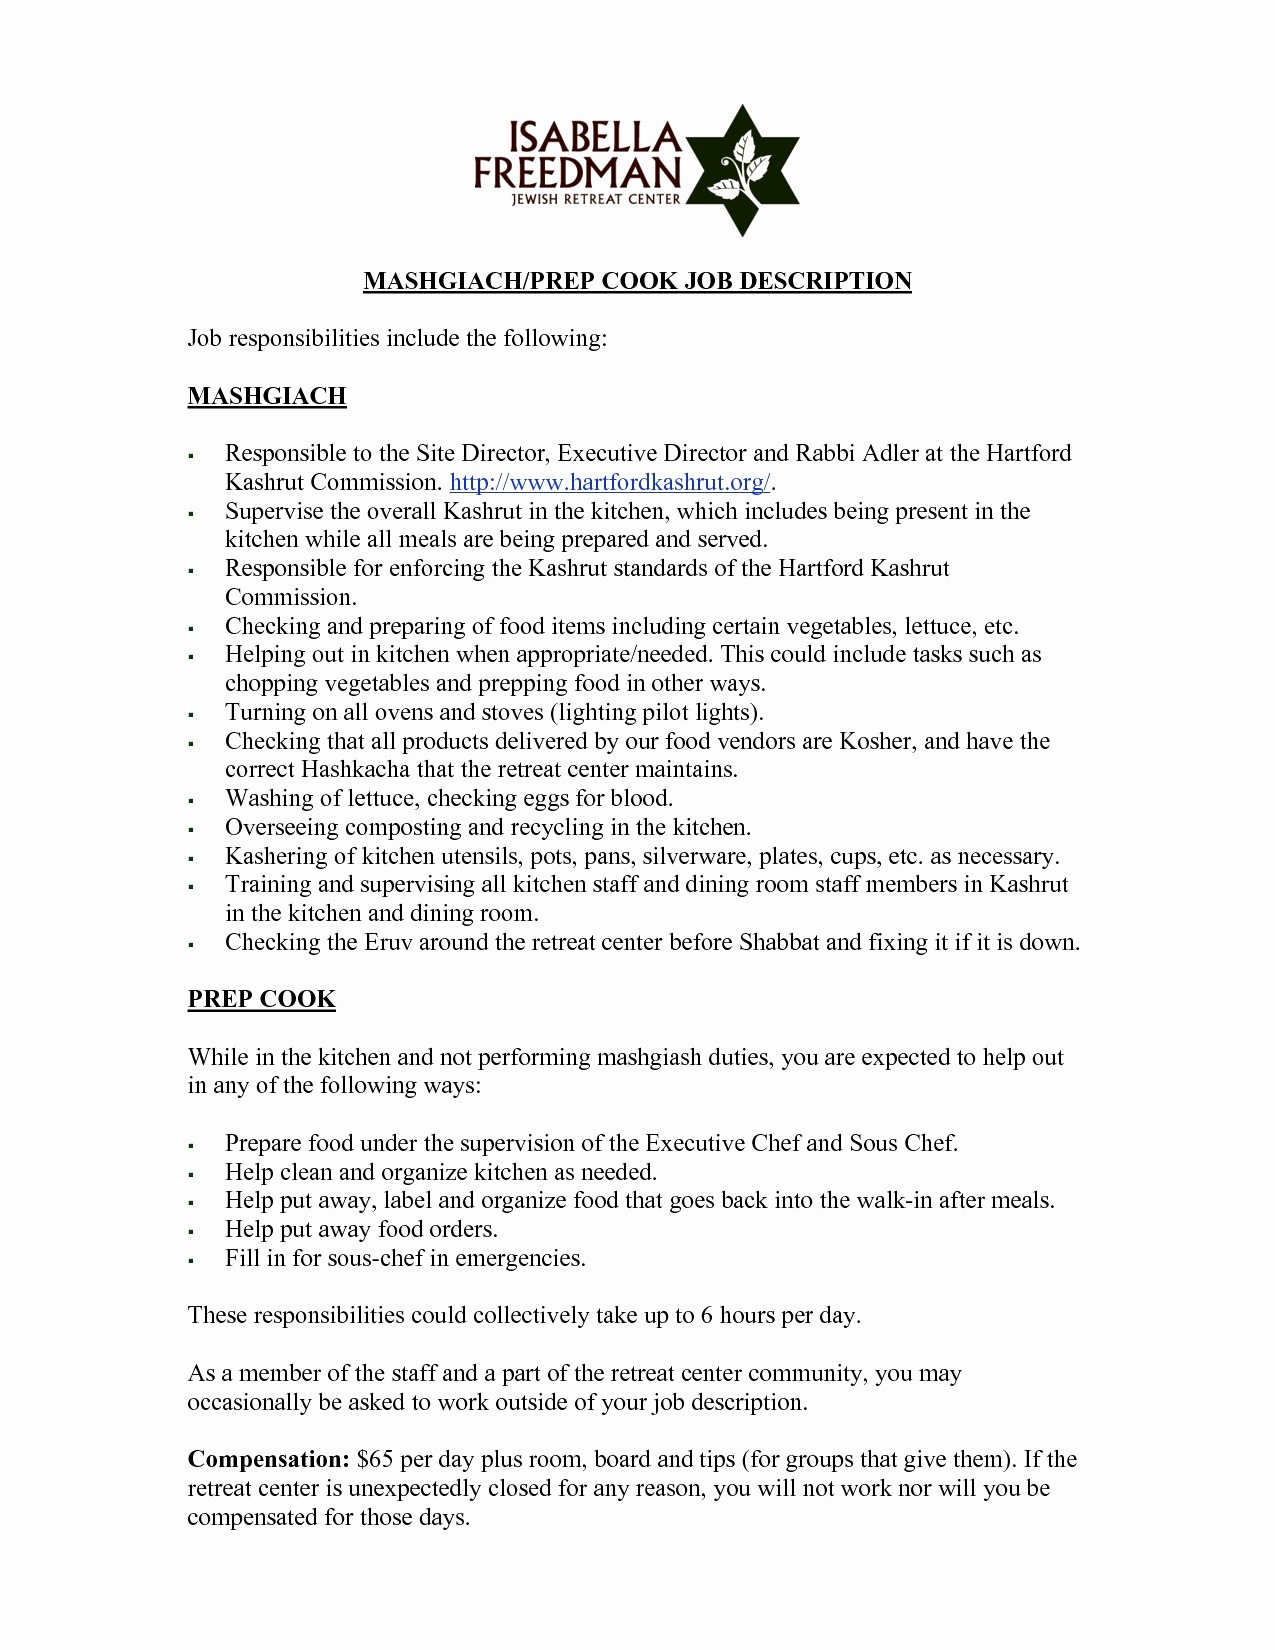 How to Make A Cover Letter Template - Resume Letter Doc New Resume Doc Template Luxury Resume and Cover